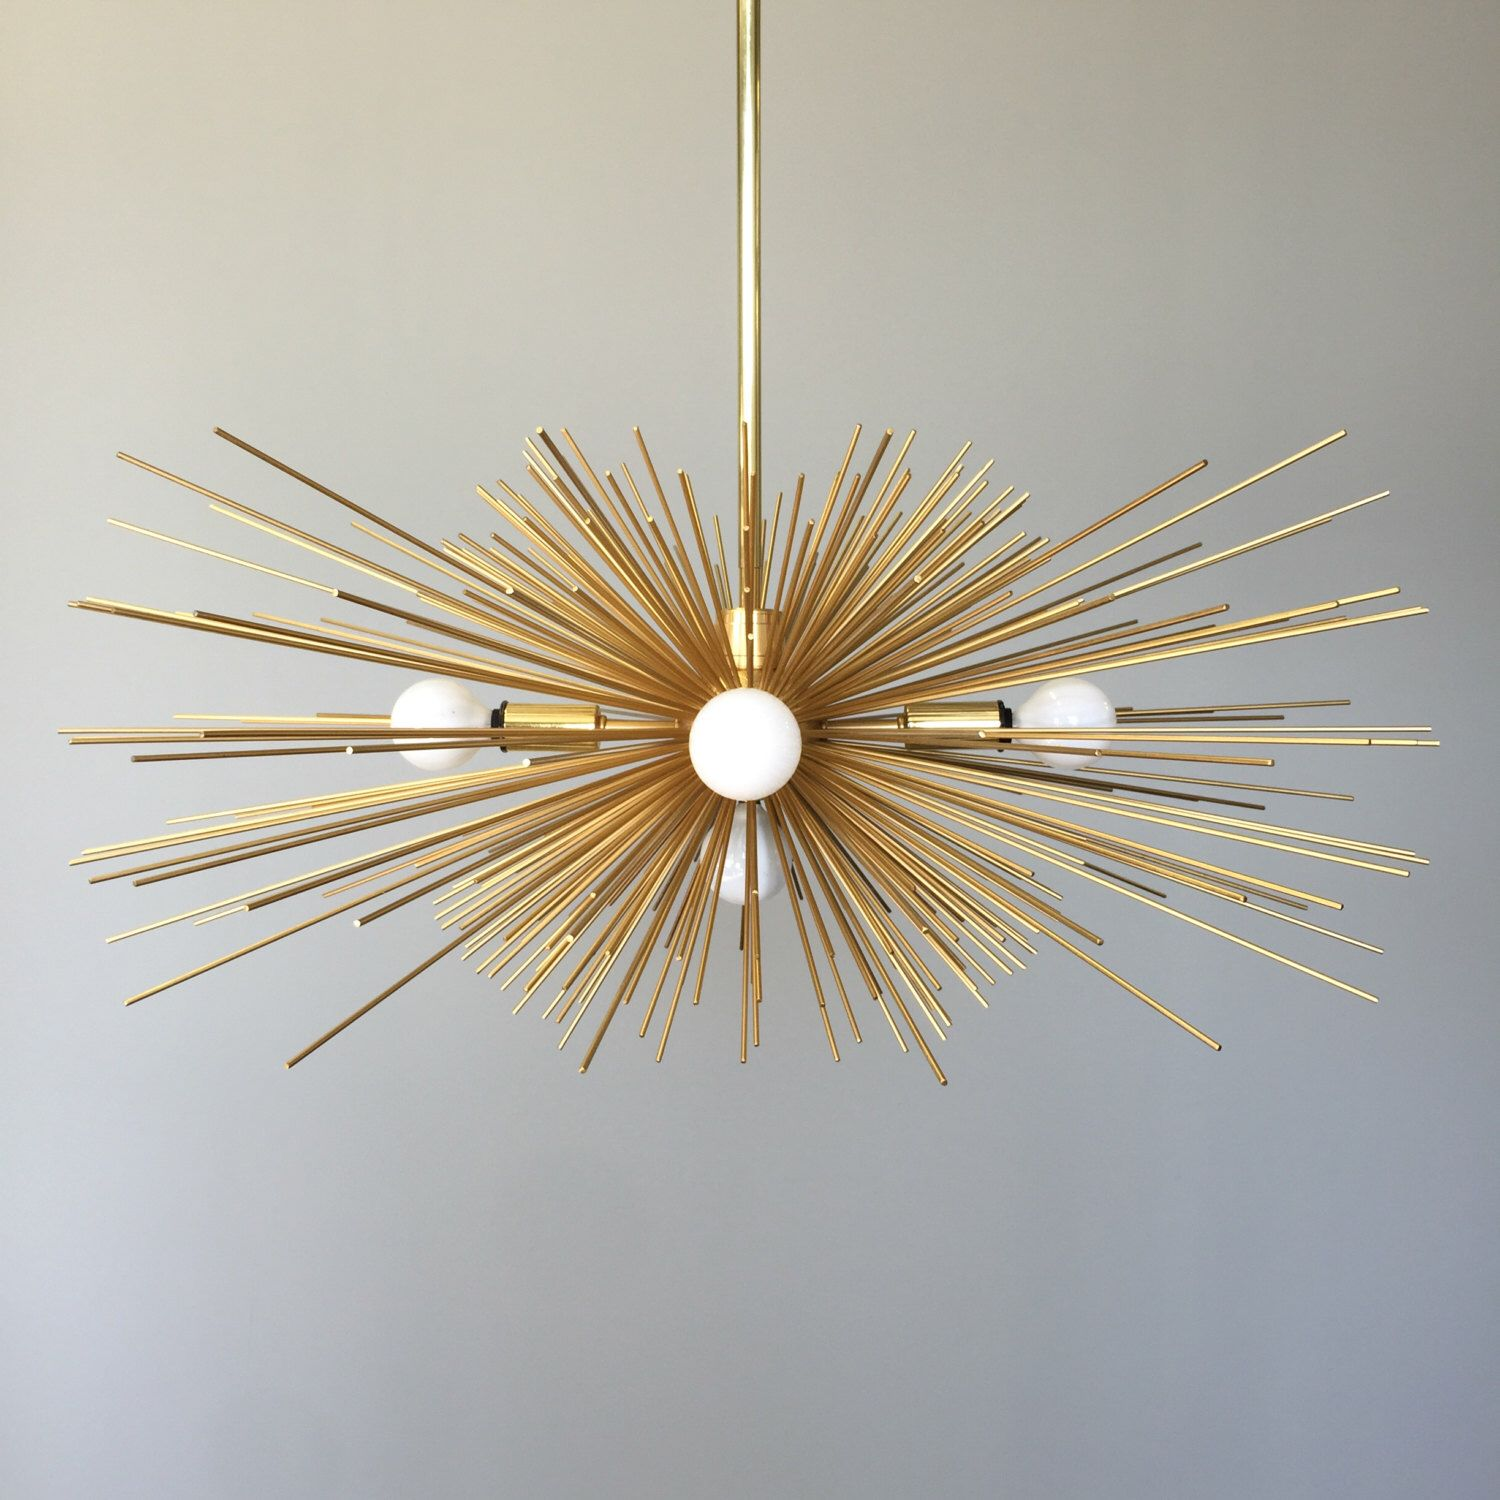 5-Bulb Gold Urchin Chandelier Lighting by DuttonBrown on Etsy ...